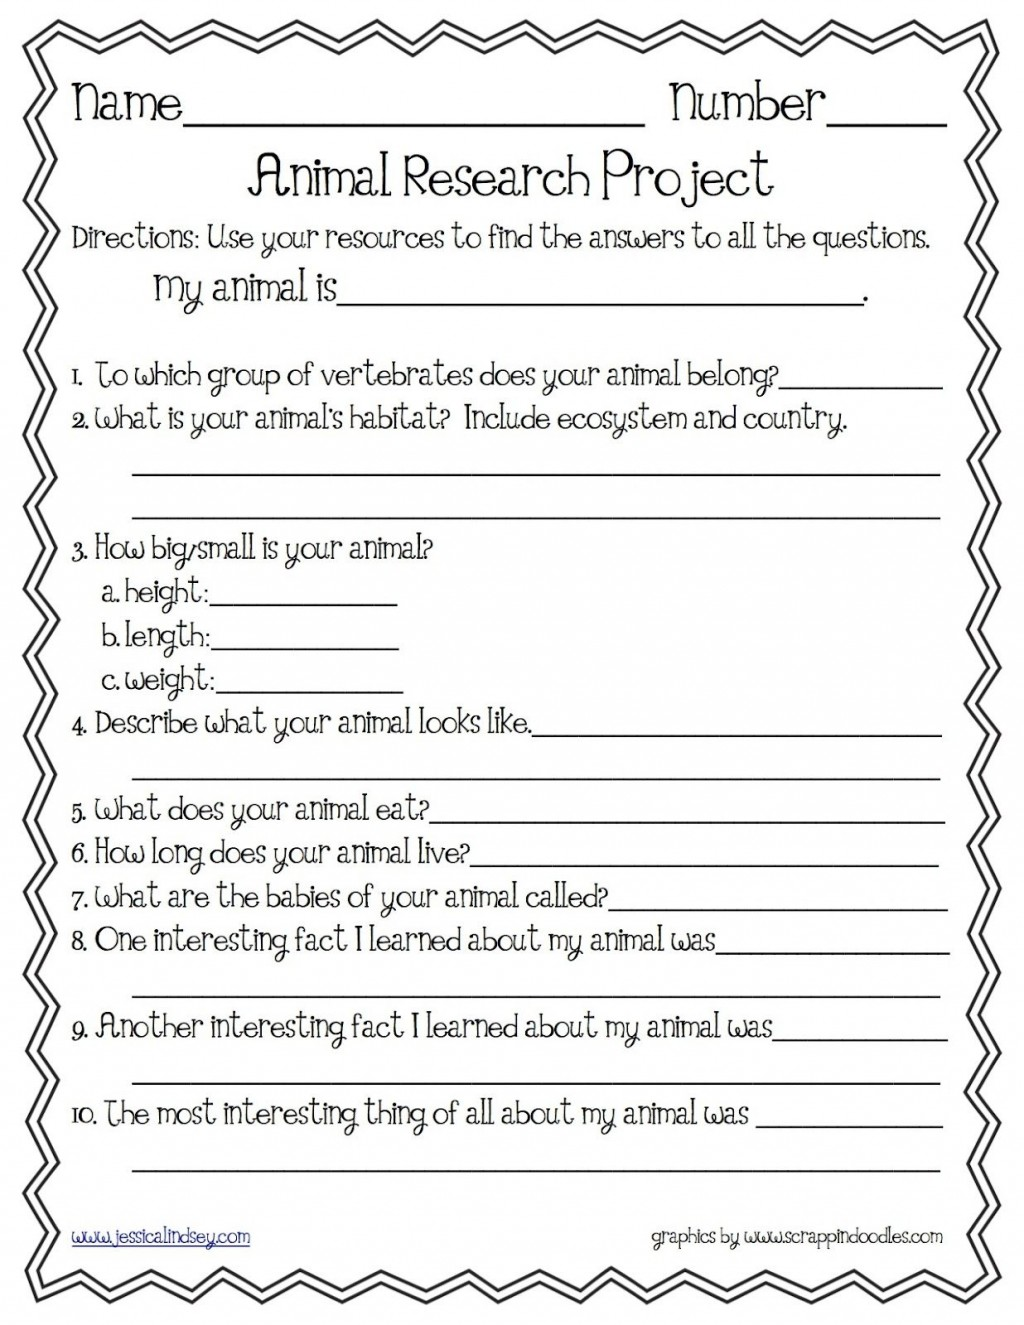 011 Research Paper Animal Striking Topics Cruelty Farm Ideas Large